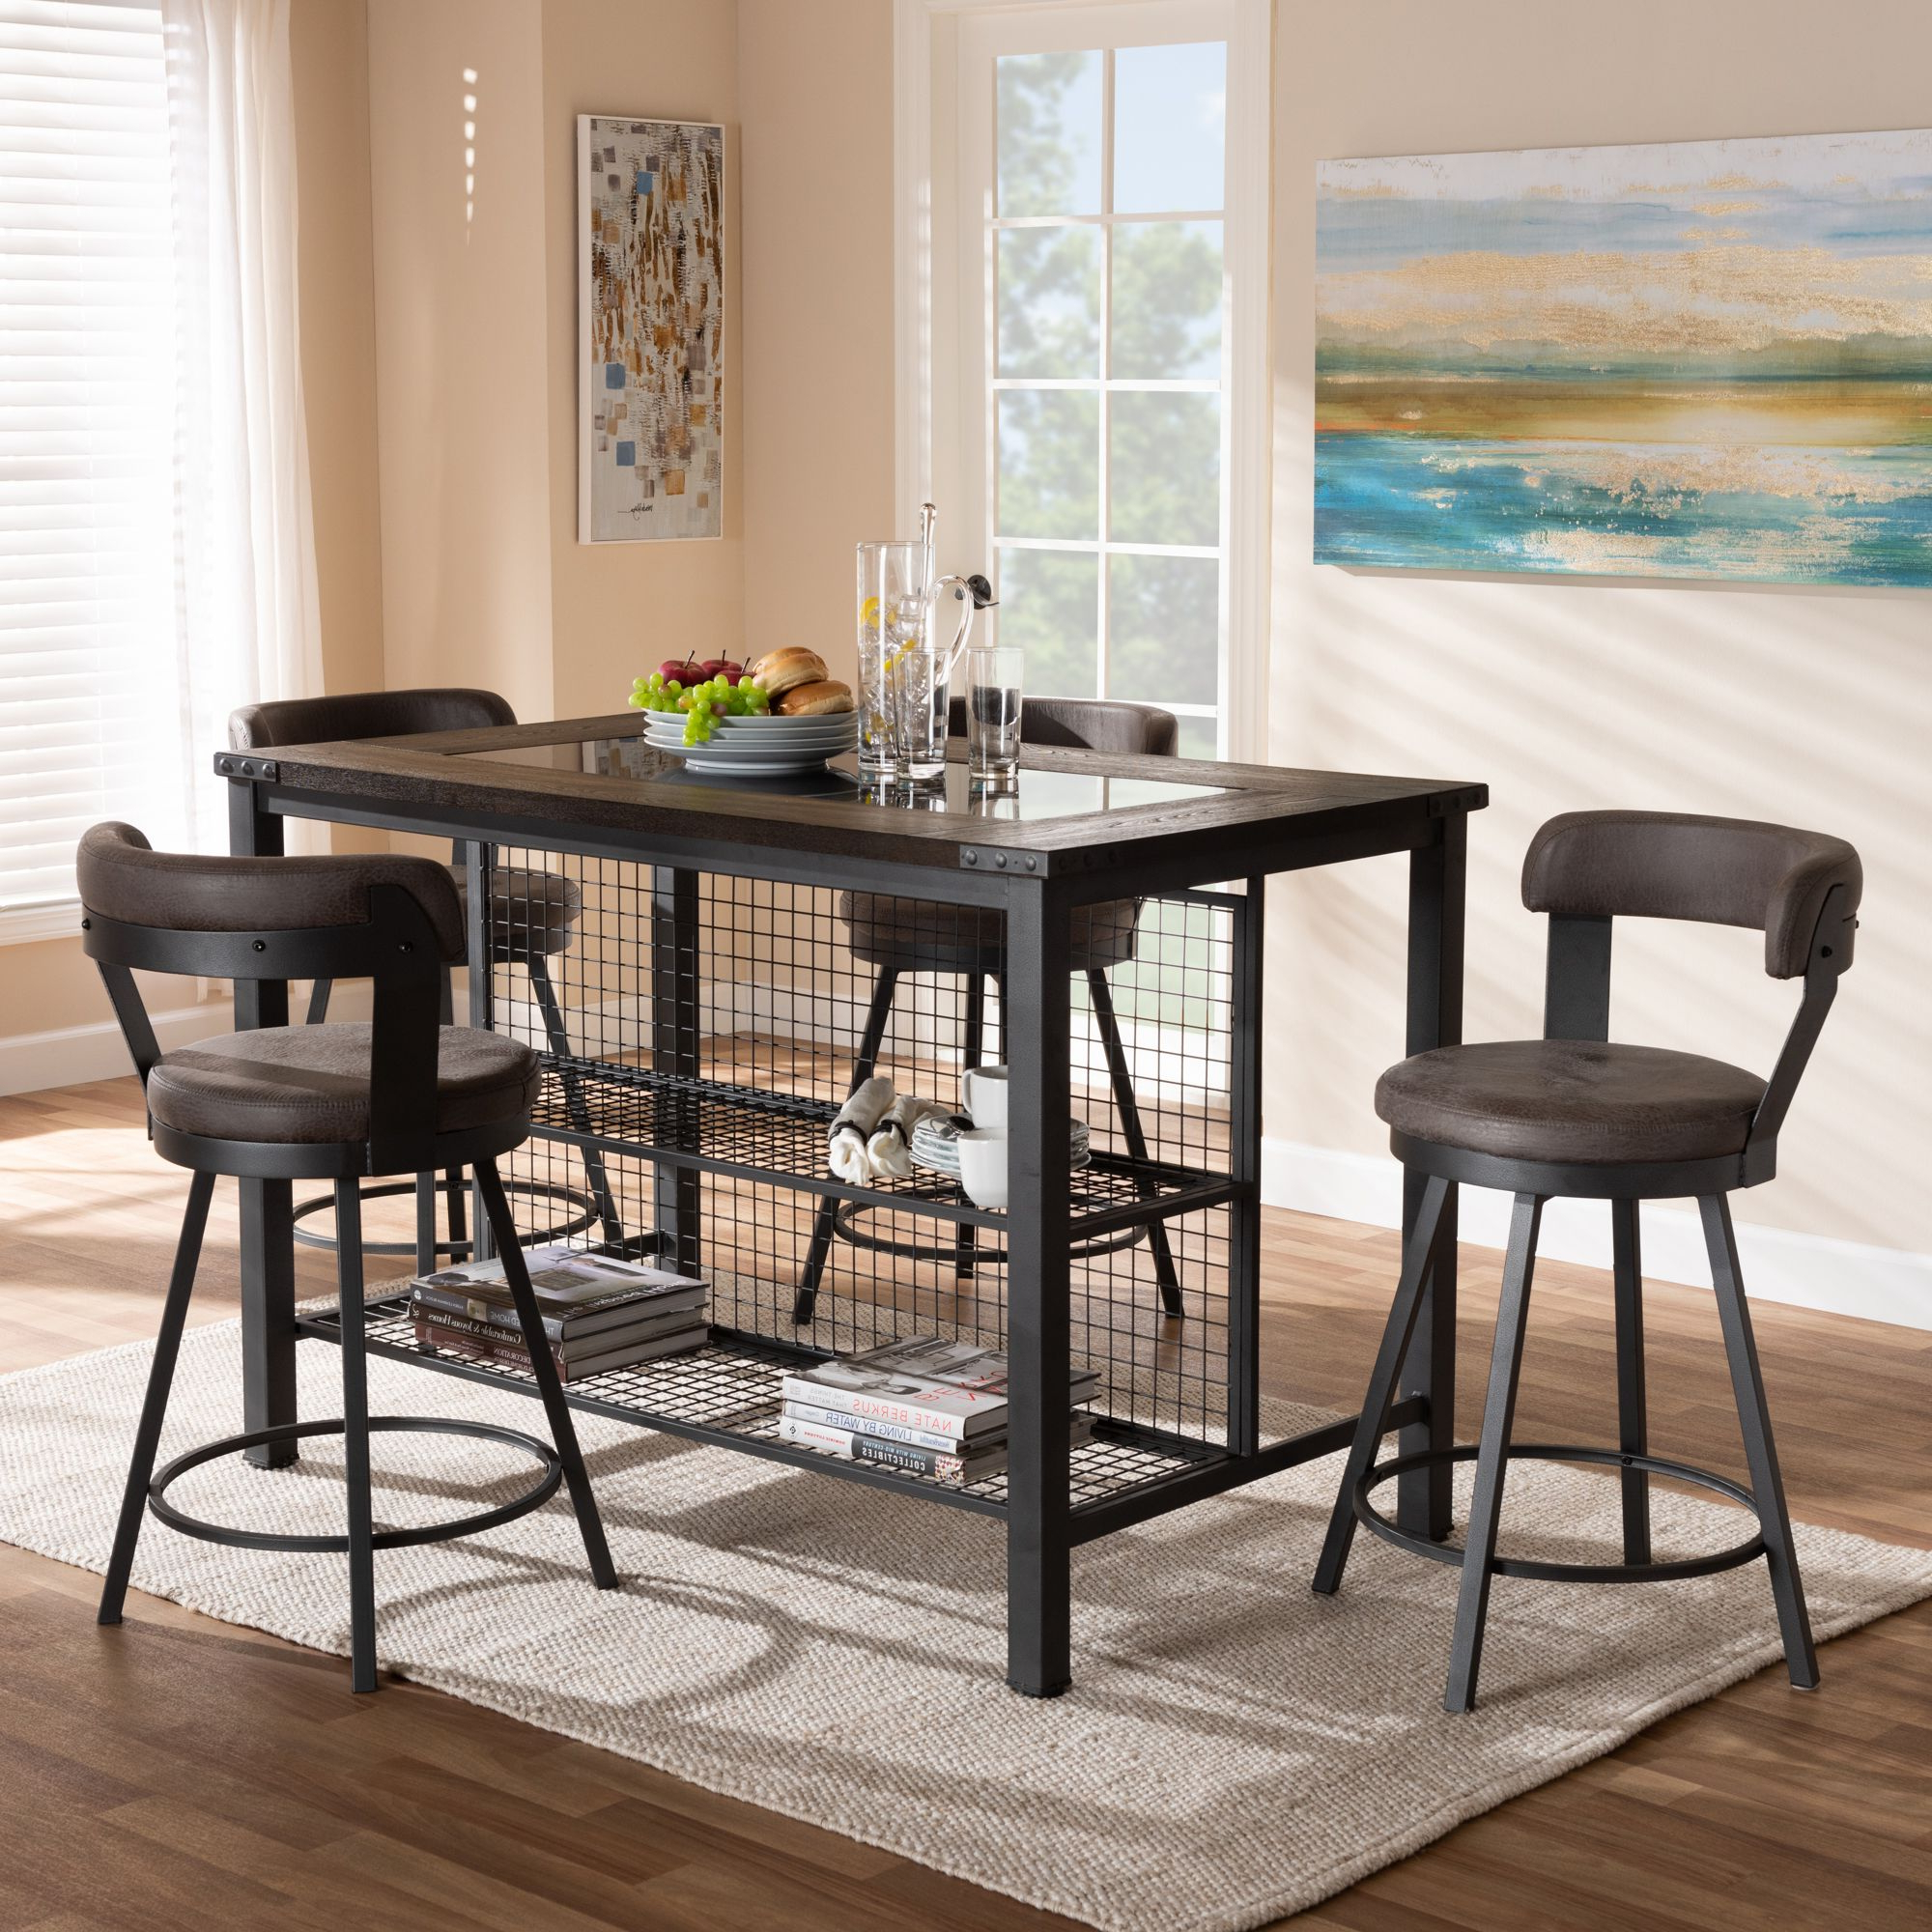 Wiggs 5 Piece Dining Sets In Well Known Baxton Studio Arcene Rustic And Industrial Antique Grey Faux Leather (View 21 of 25)